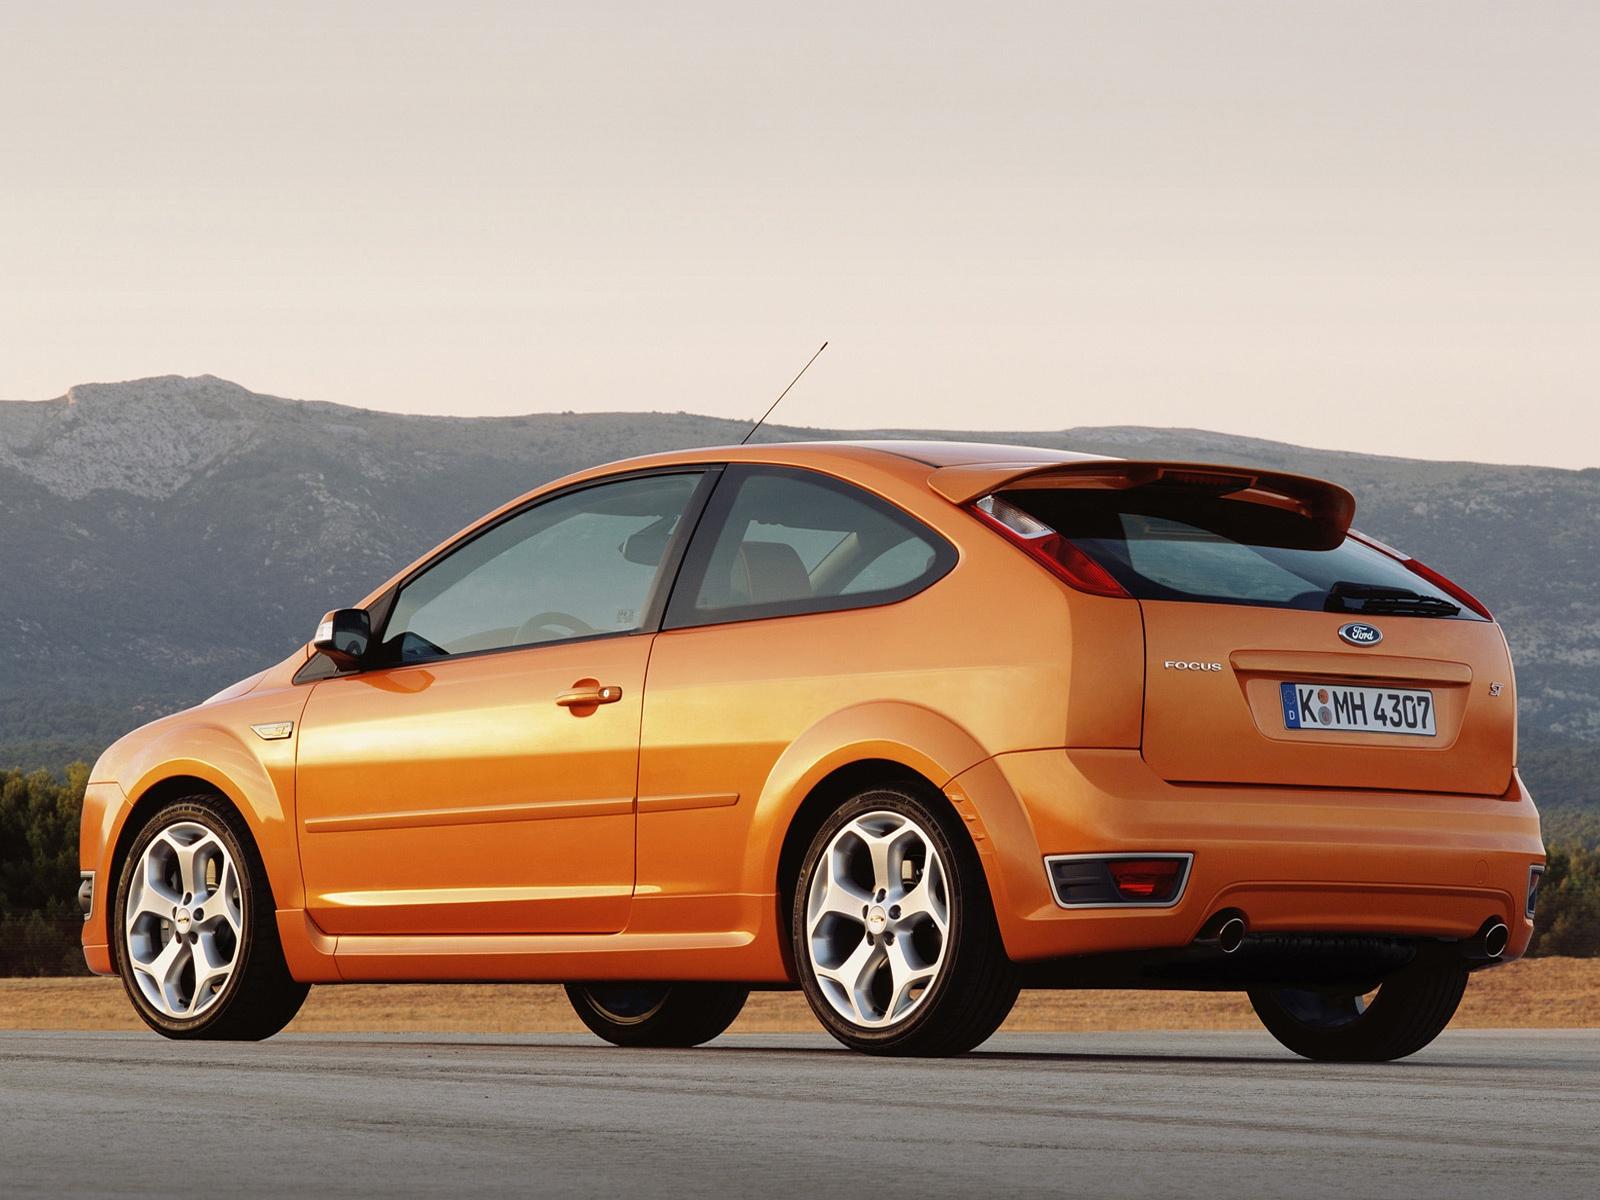 Ford Focus ST 8 wallpapers Ford Focus ST 8 stock photos 1600x1200